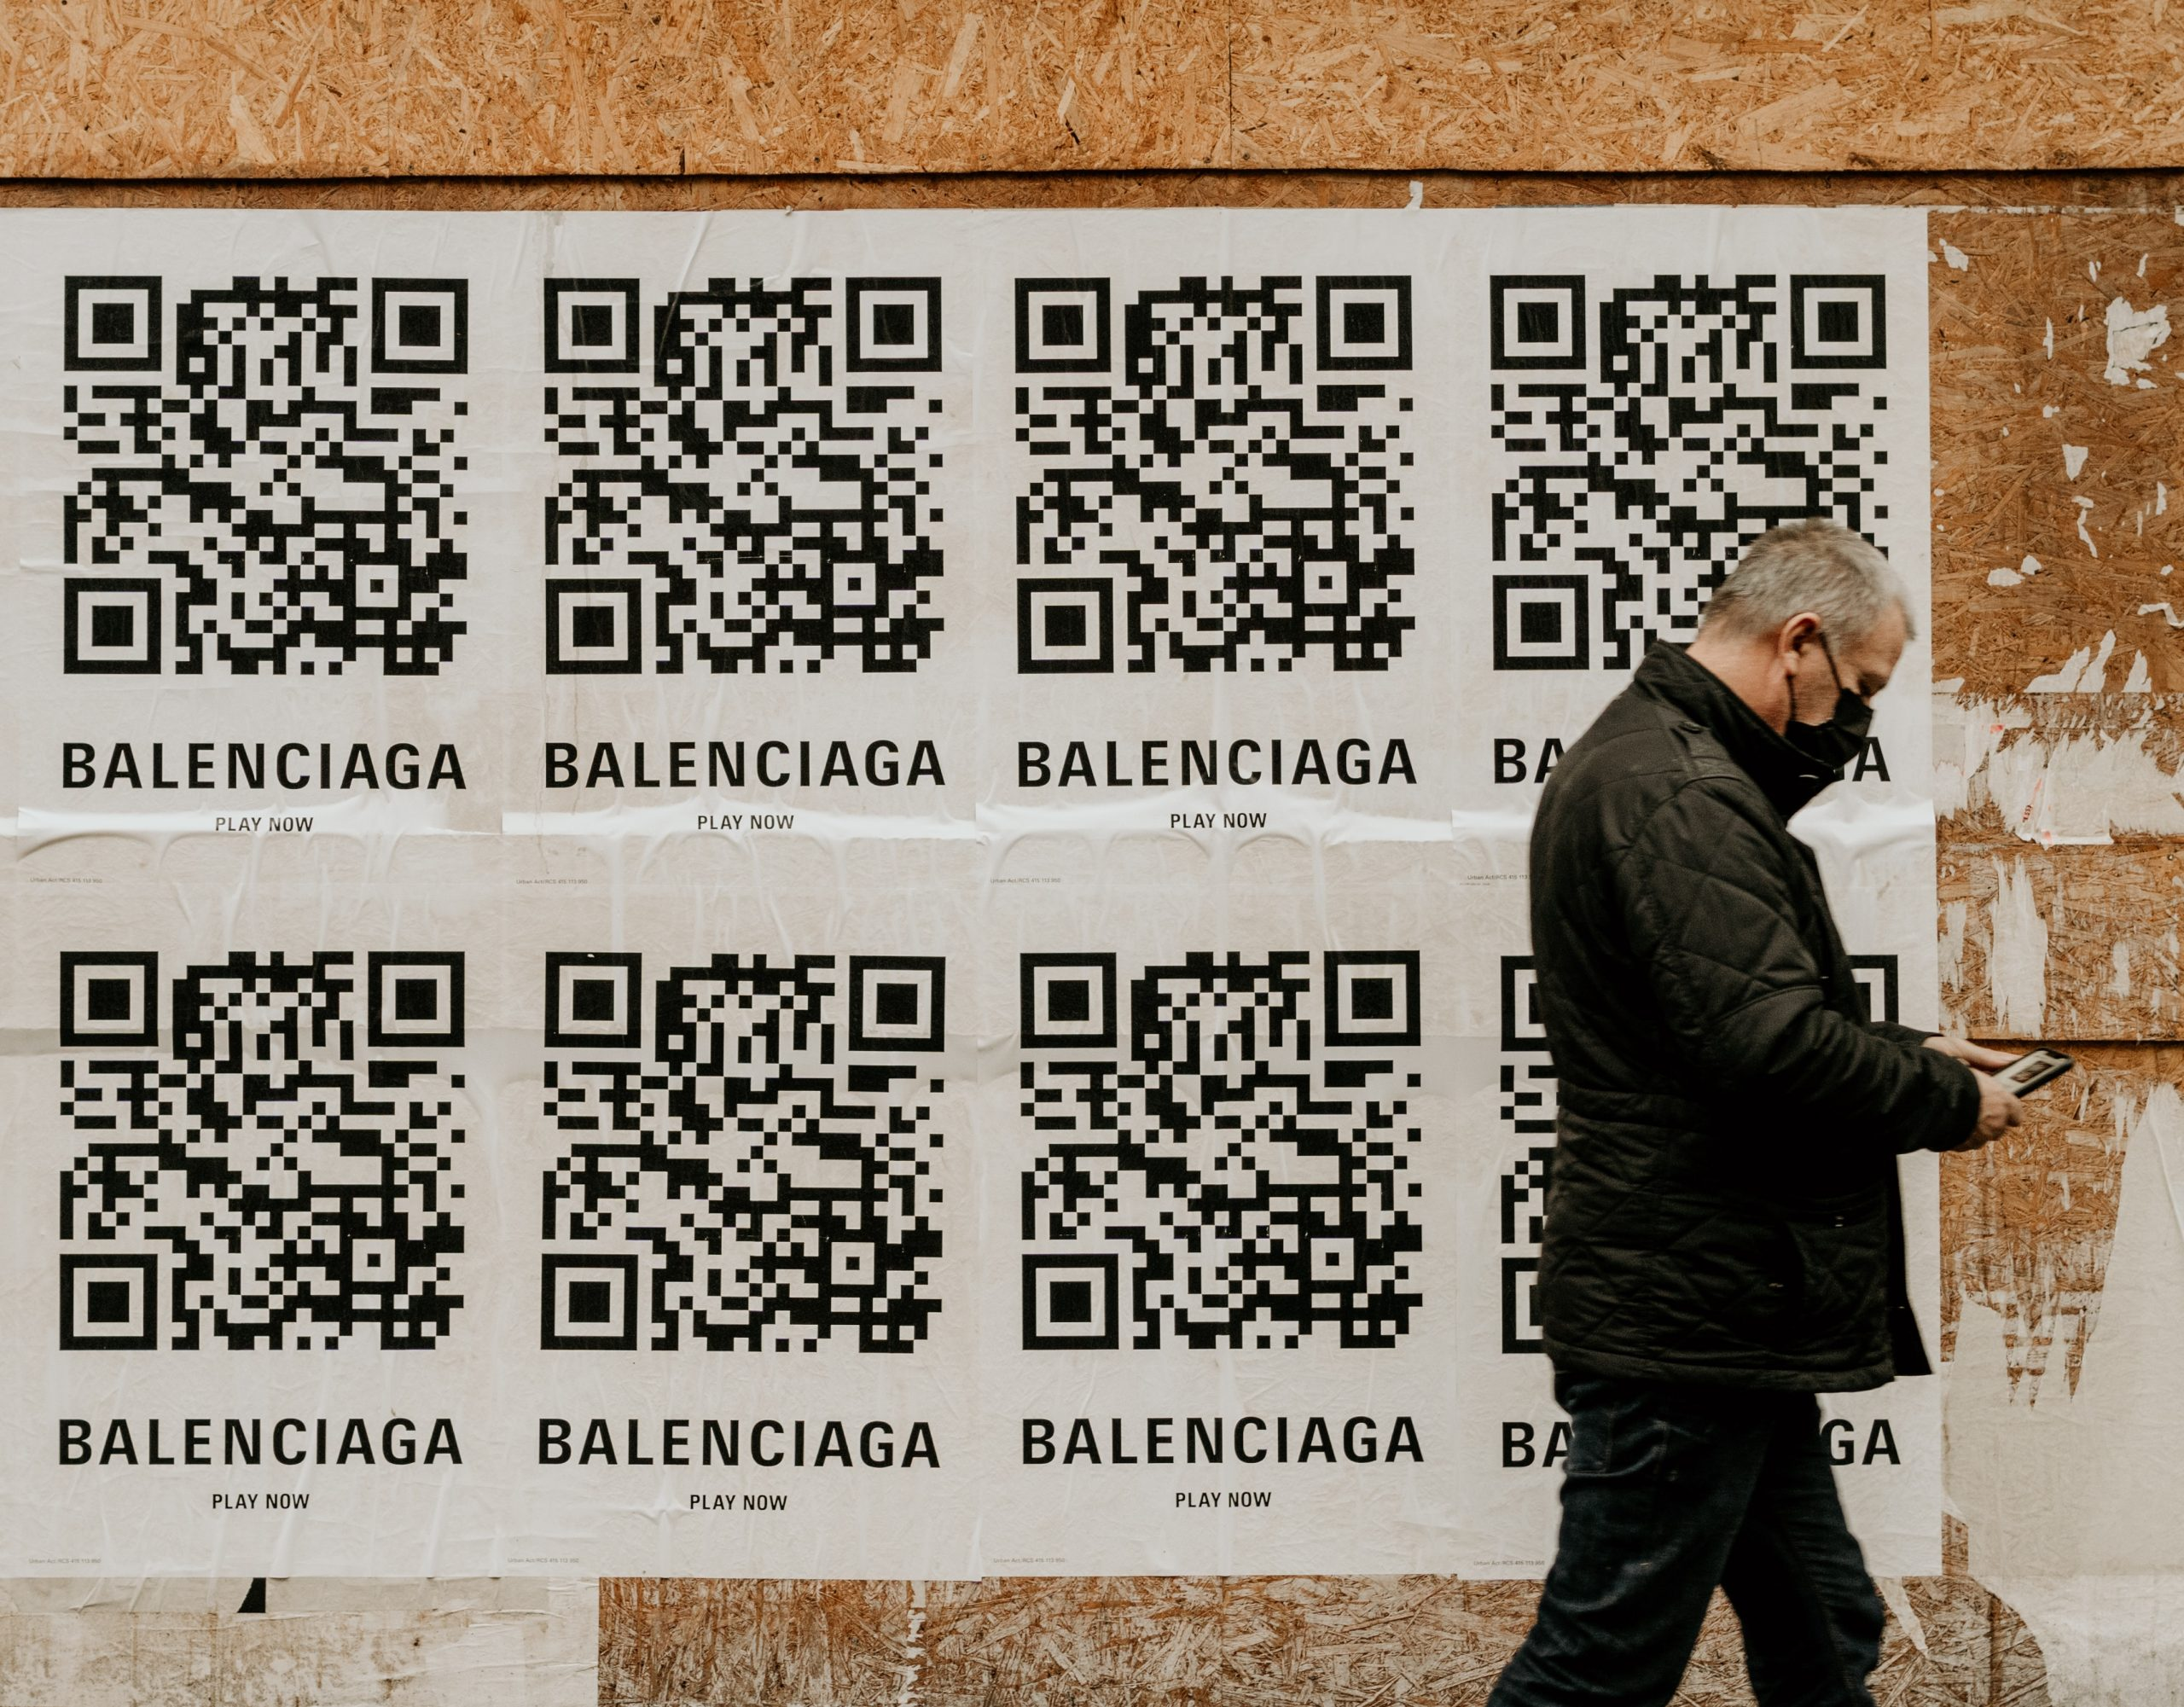 How Can Your Brand Utilize QR Code Marketing?